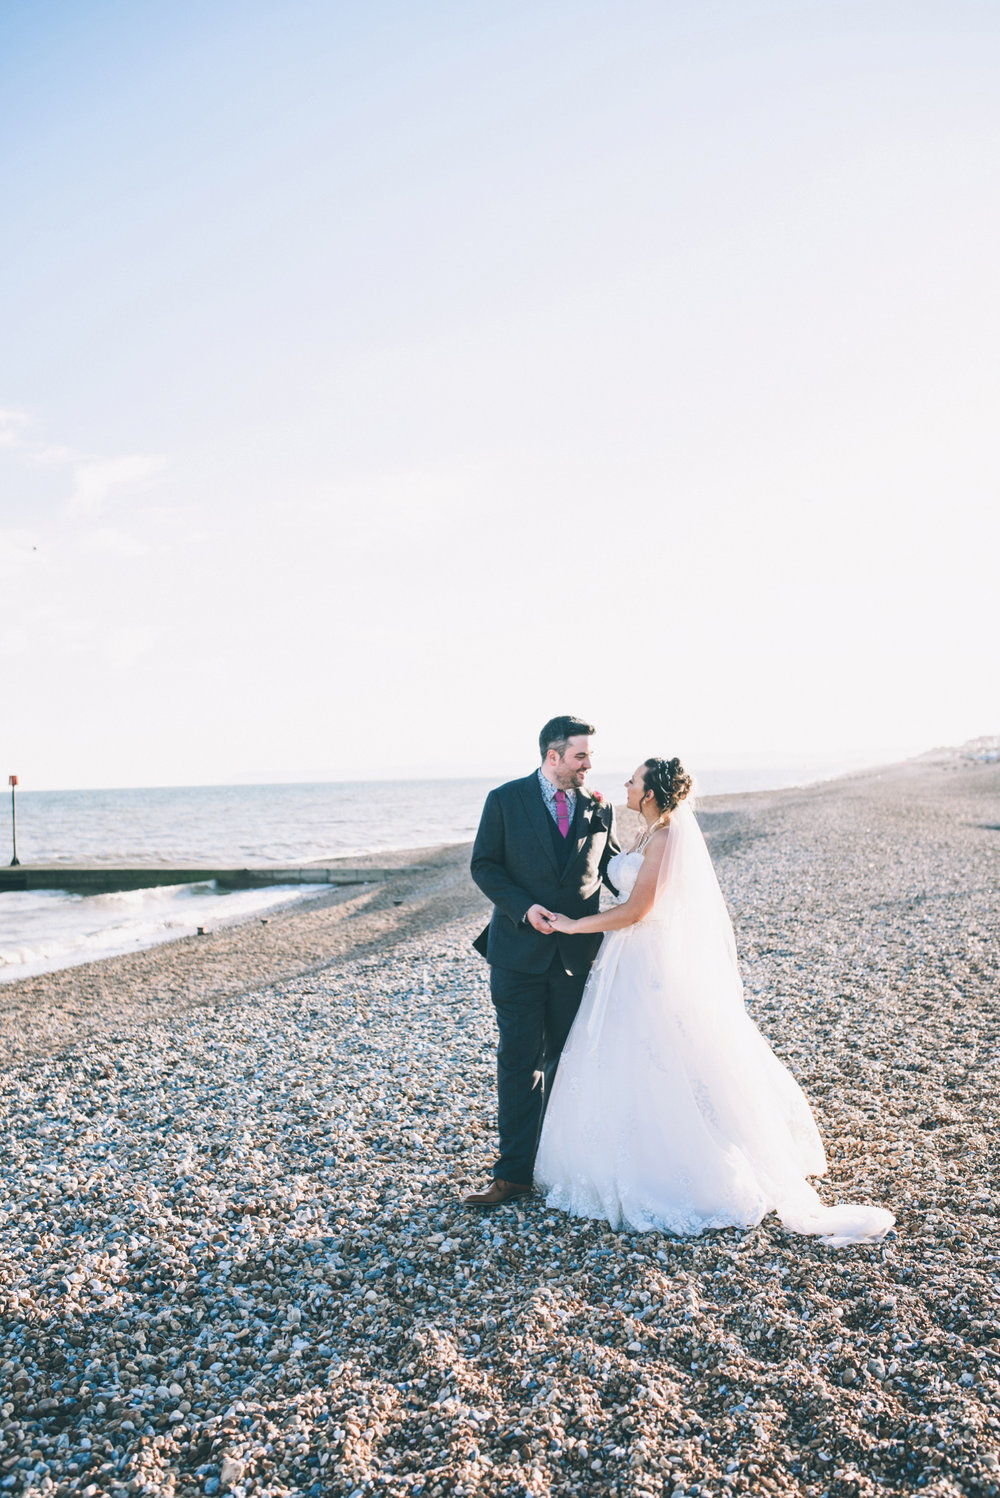 bexhill-on-sea-de-la-warr-pavillion-wedding-photos-photography-by-lindsley-weddings_0037.jpg